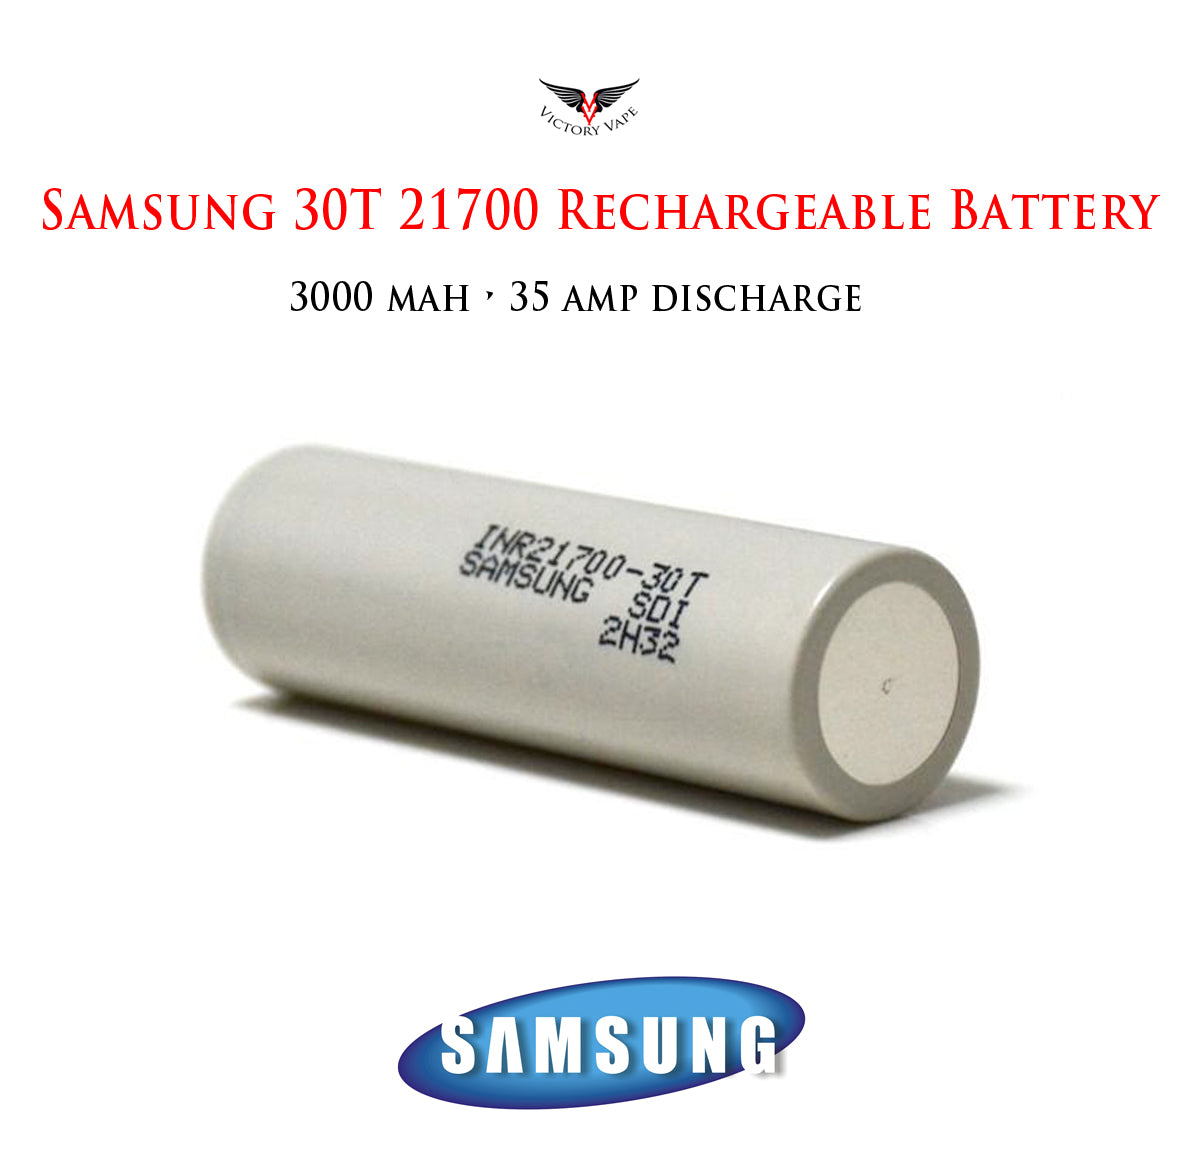 Samsung 30T 21700 • 3000mAh 35A rechargeable battery